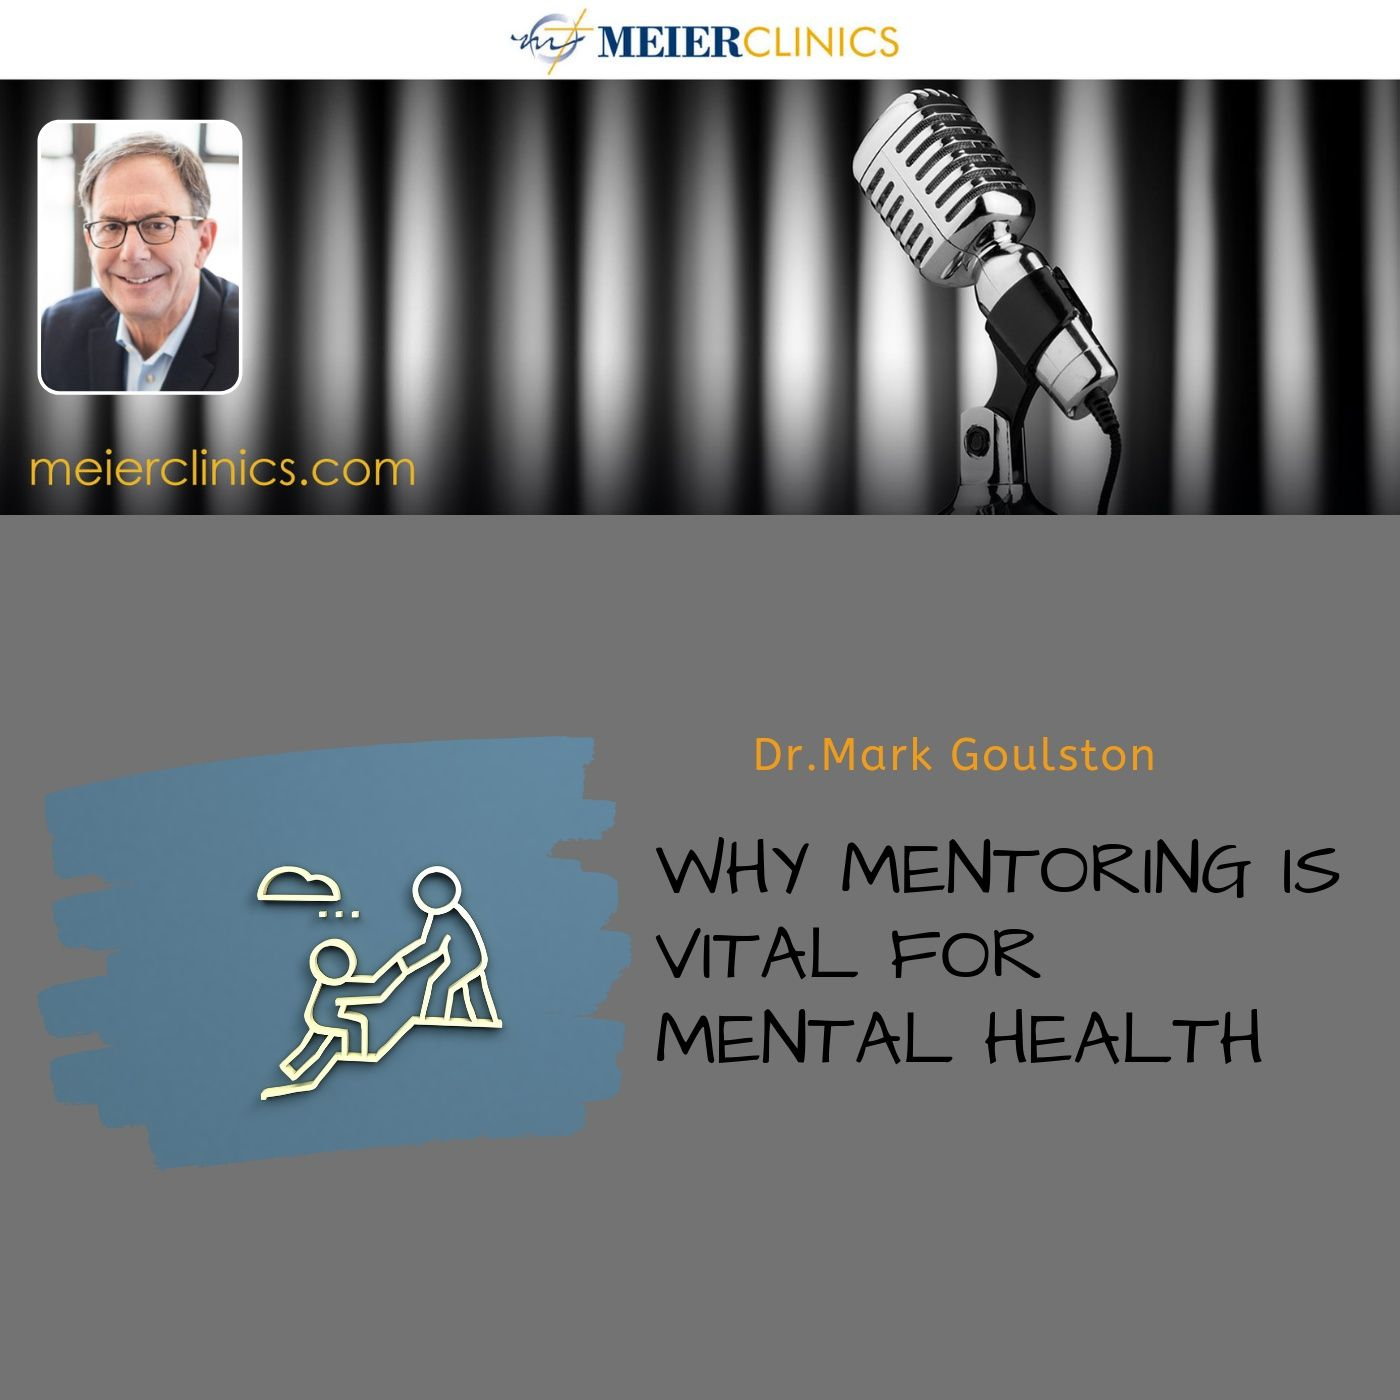 Why Mentoring is Vital for Mental Health